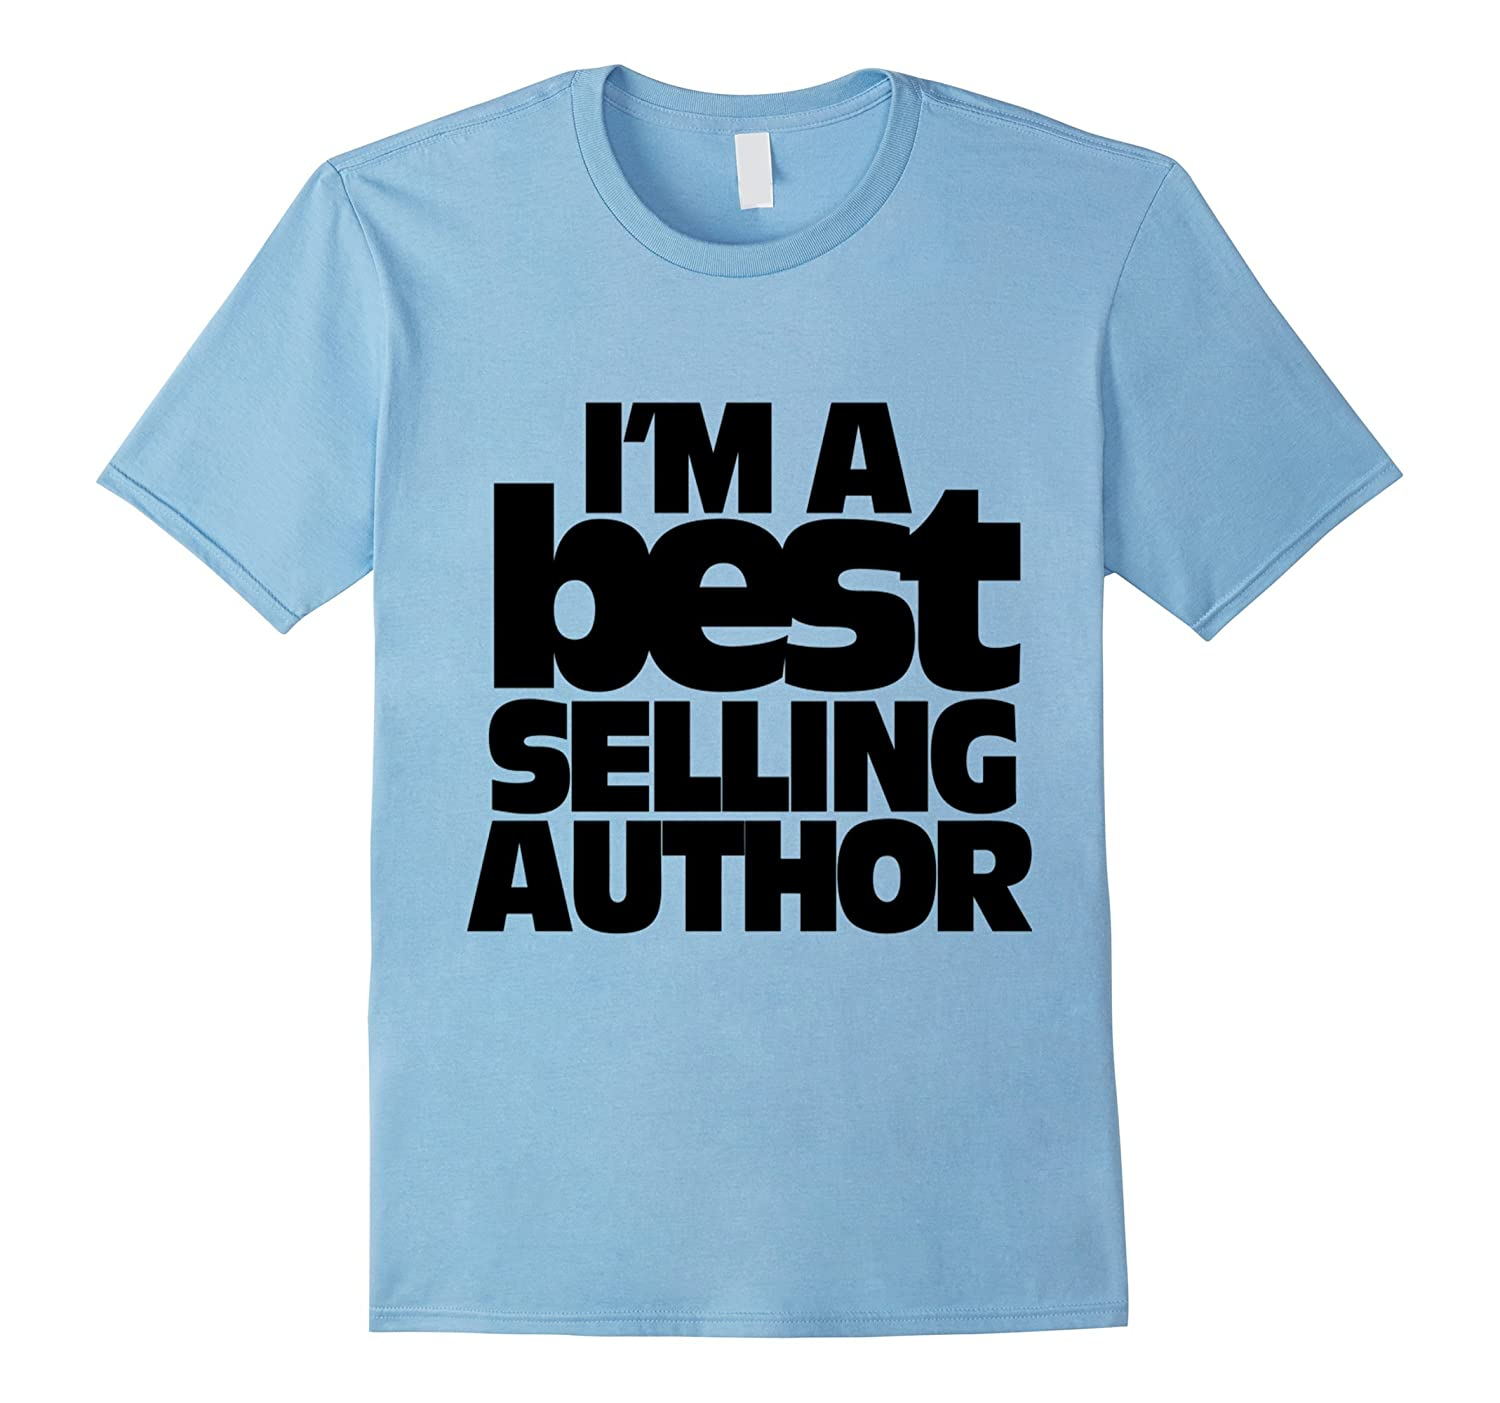 Im The Best Selling Writer Author Tshirt Author Writer Gift-TJ